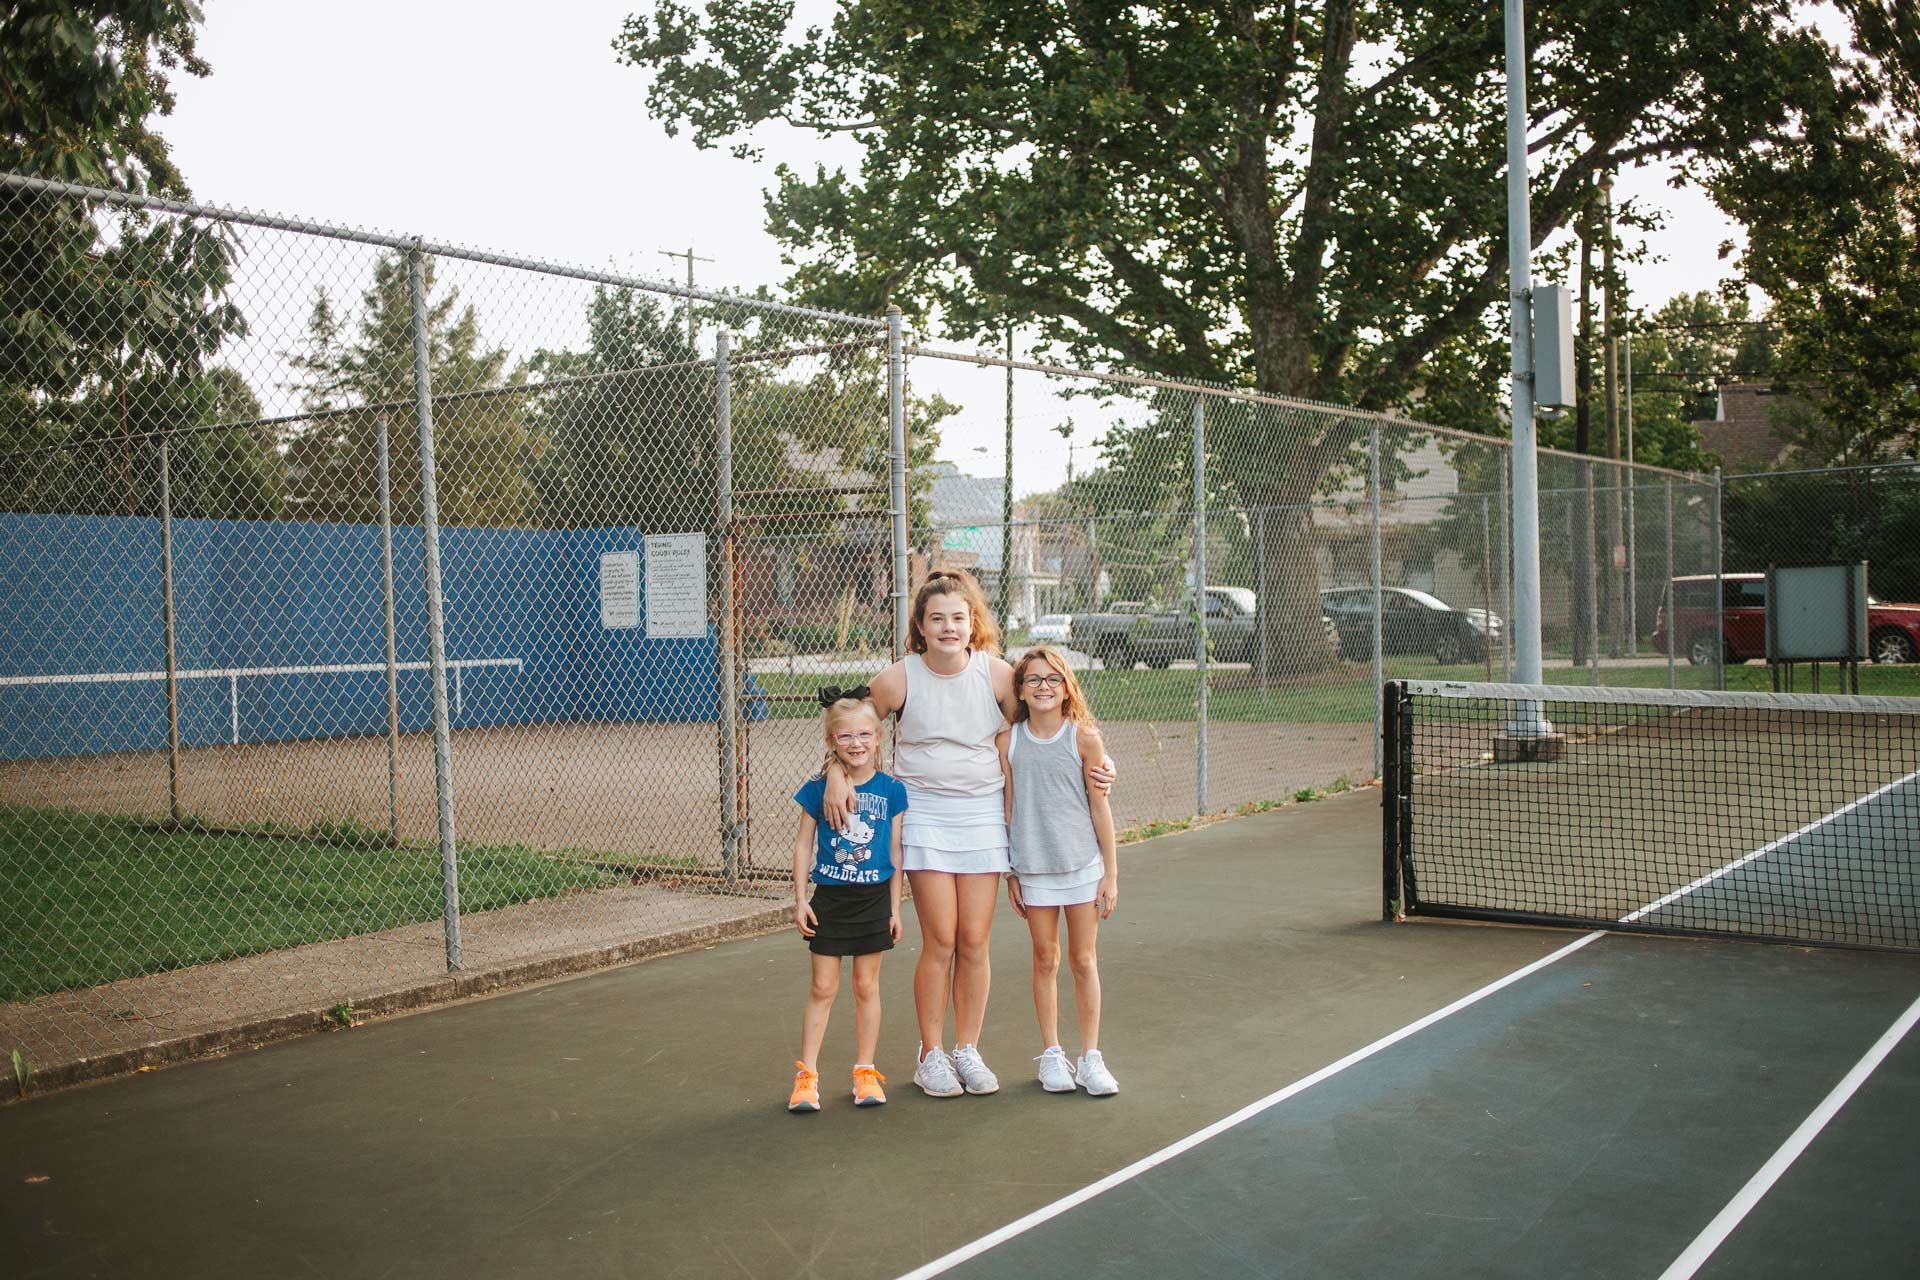 The Buffano sisters stand next to each other on a tennis court. Isabella, the oldest, has her arms around her younger sisters. All are smiling.